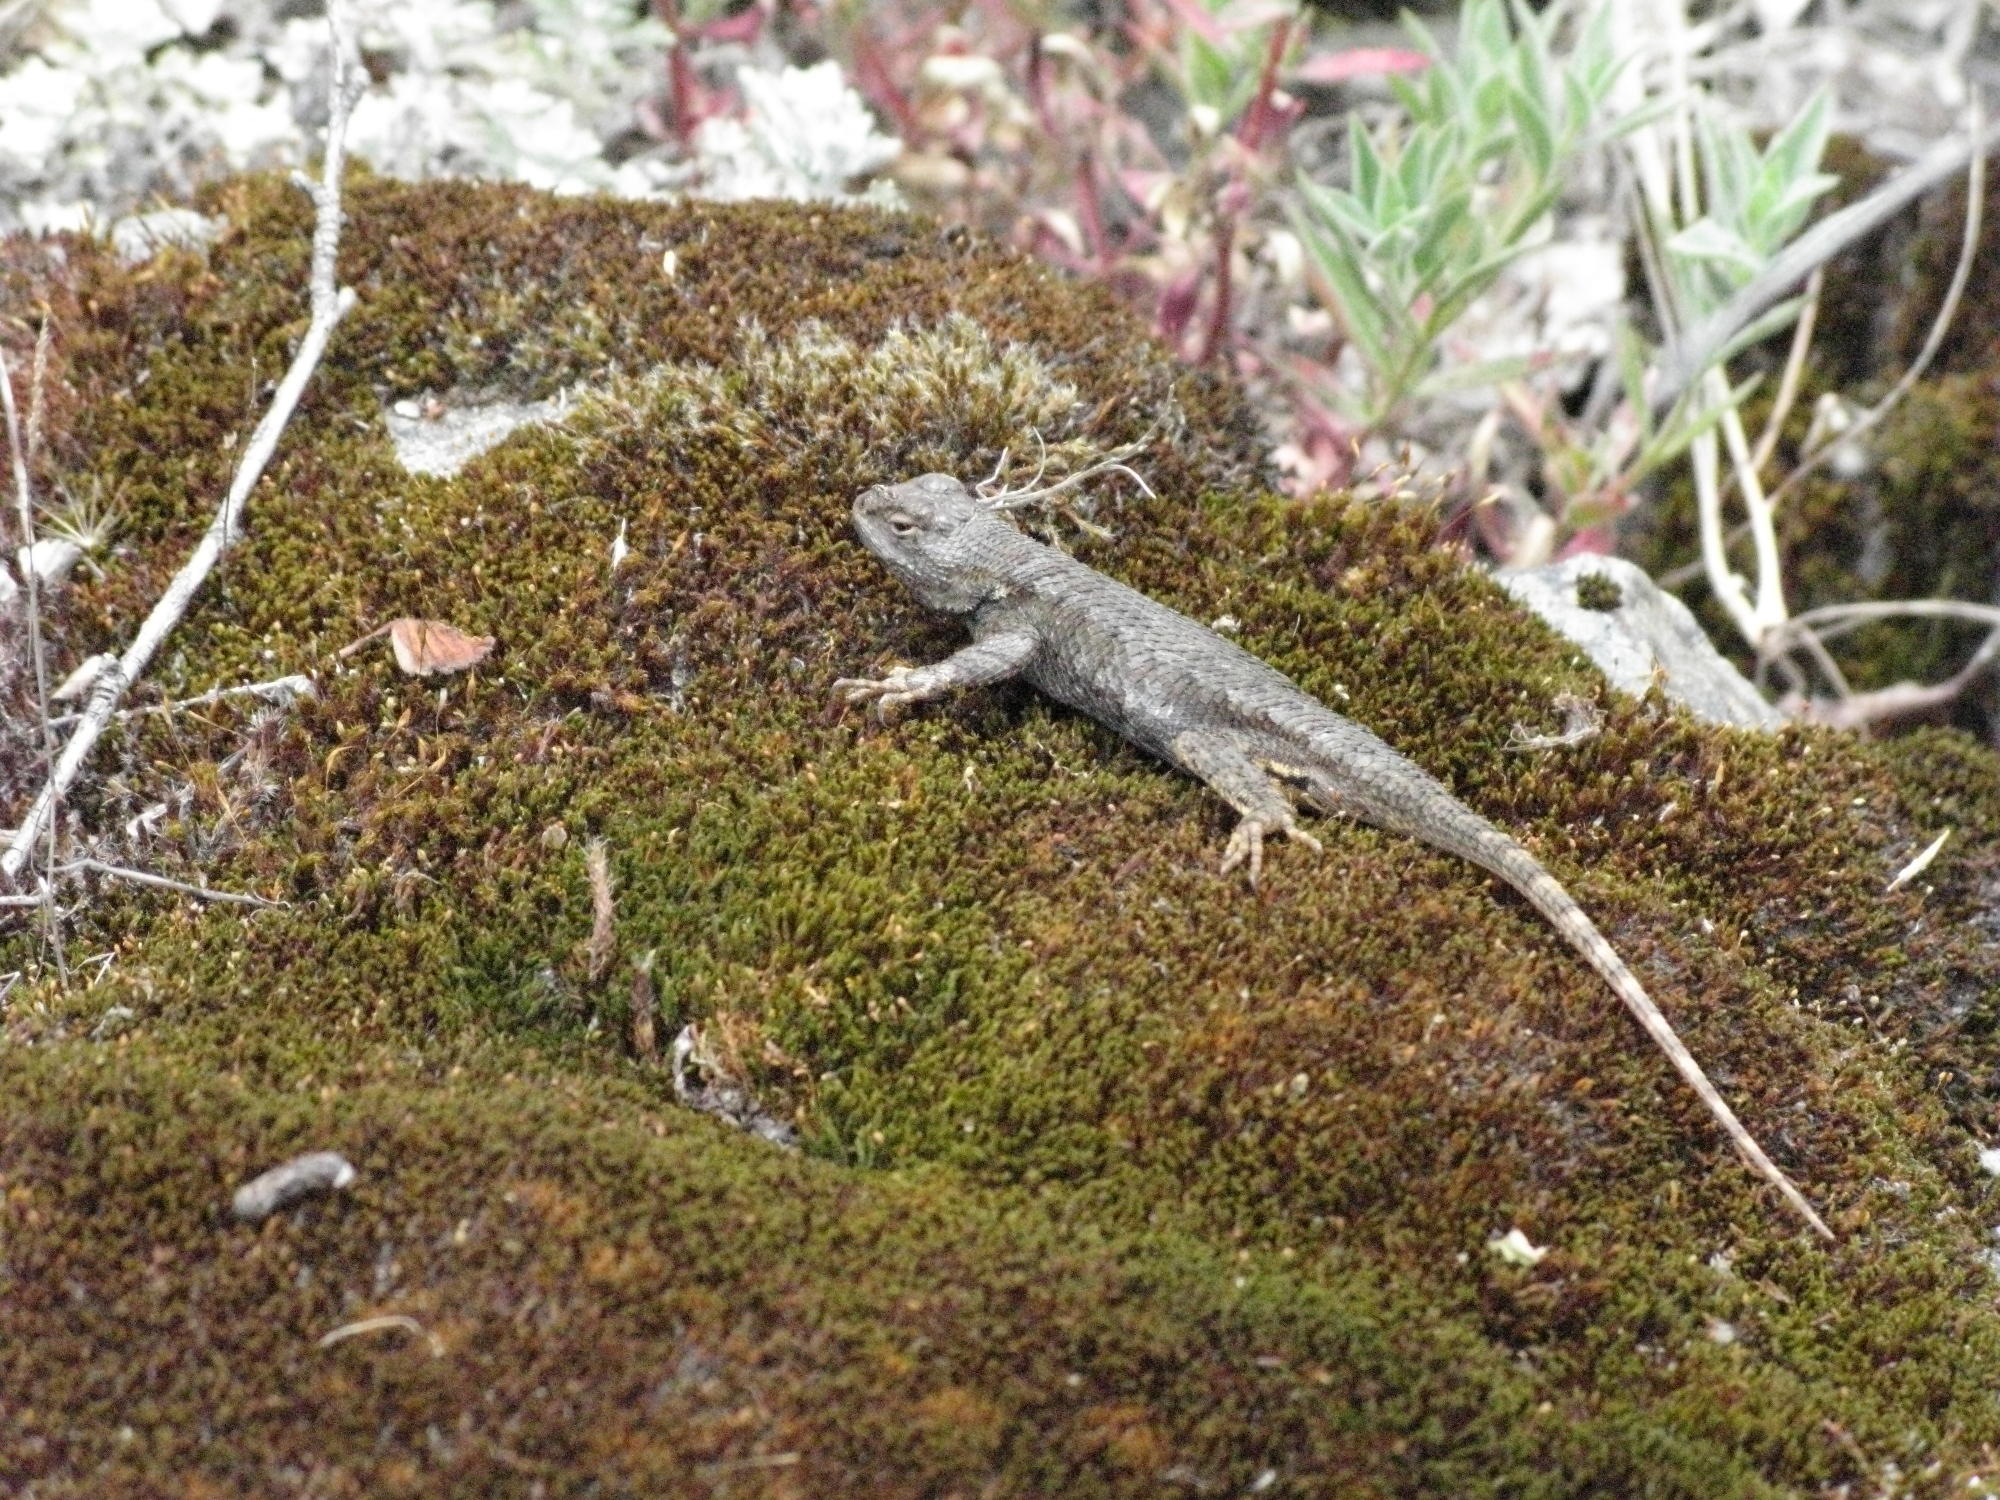 Lizard on Mossy Banks of Eel River, Covelo Yoga and Healing Festival